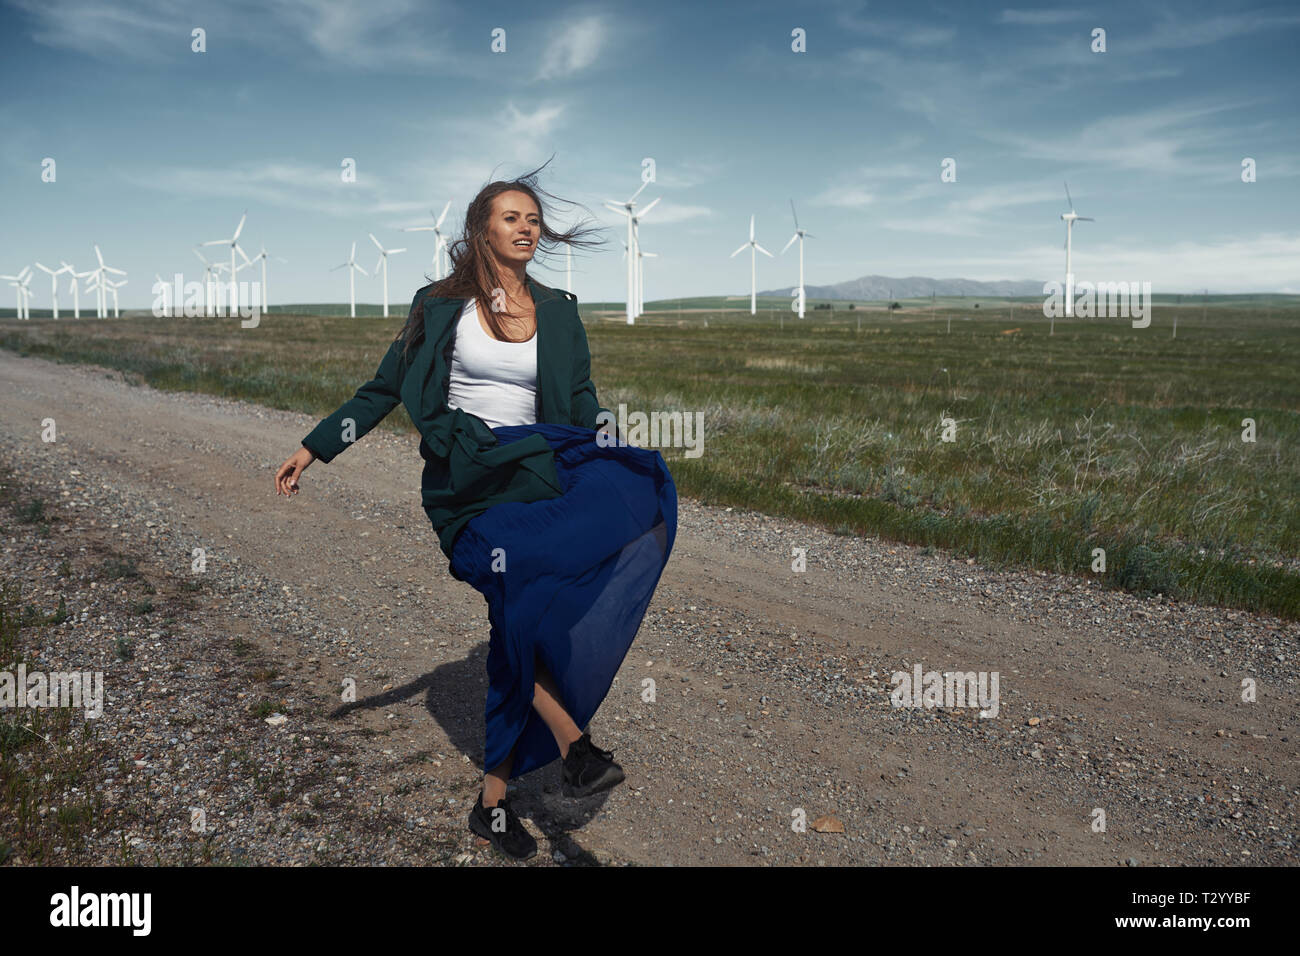 Woman with long tousled hair next to the wind turbine with the wind blowing Stock Photo